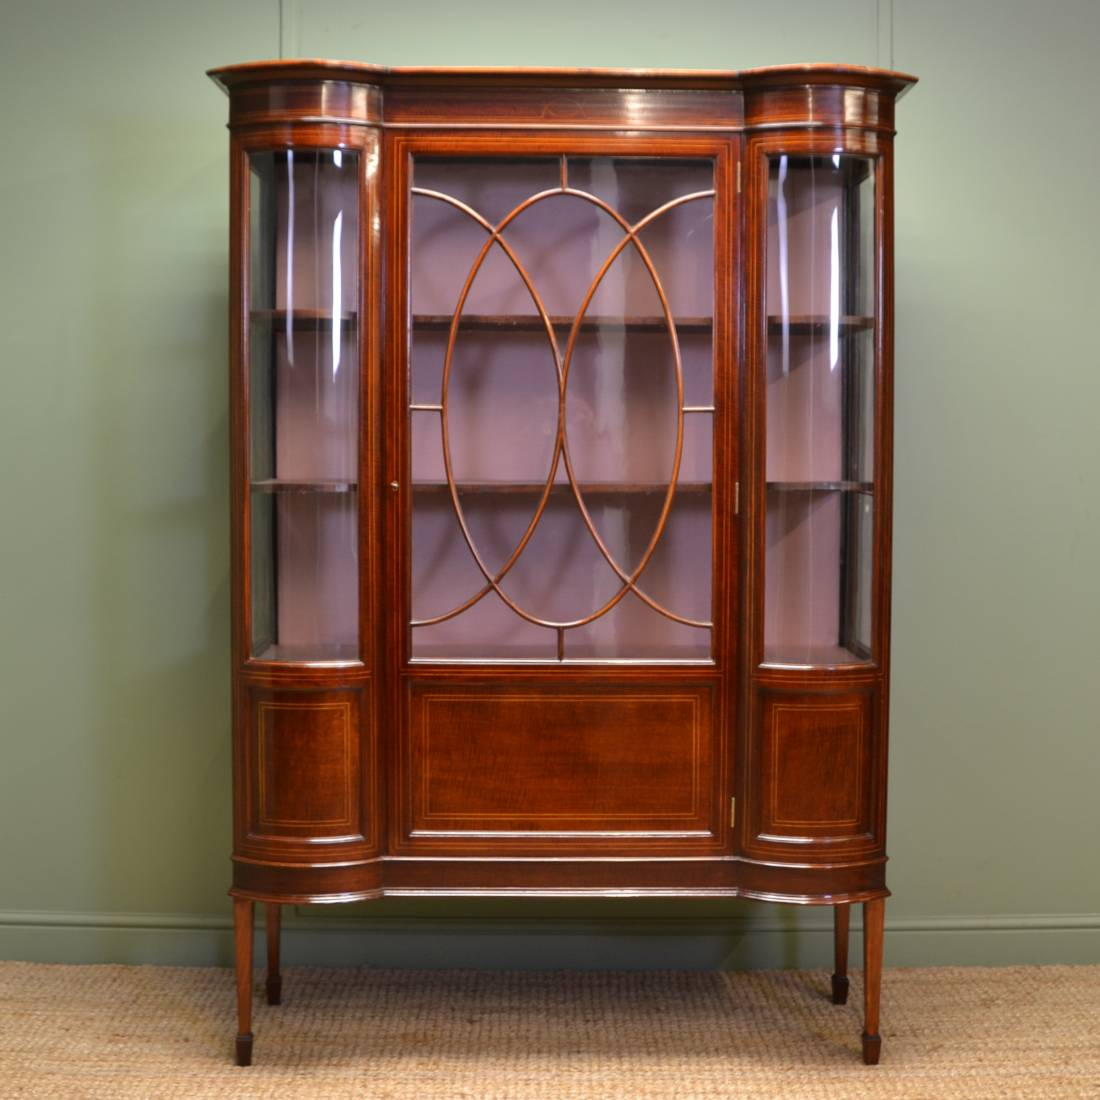 Magnificent Quality Feathered Mahogany, Quality Edwardian Inlaid Antique  Display Cabinet.   Antiques World